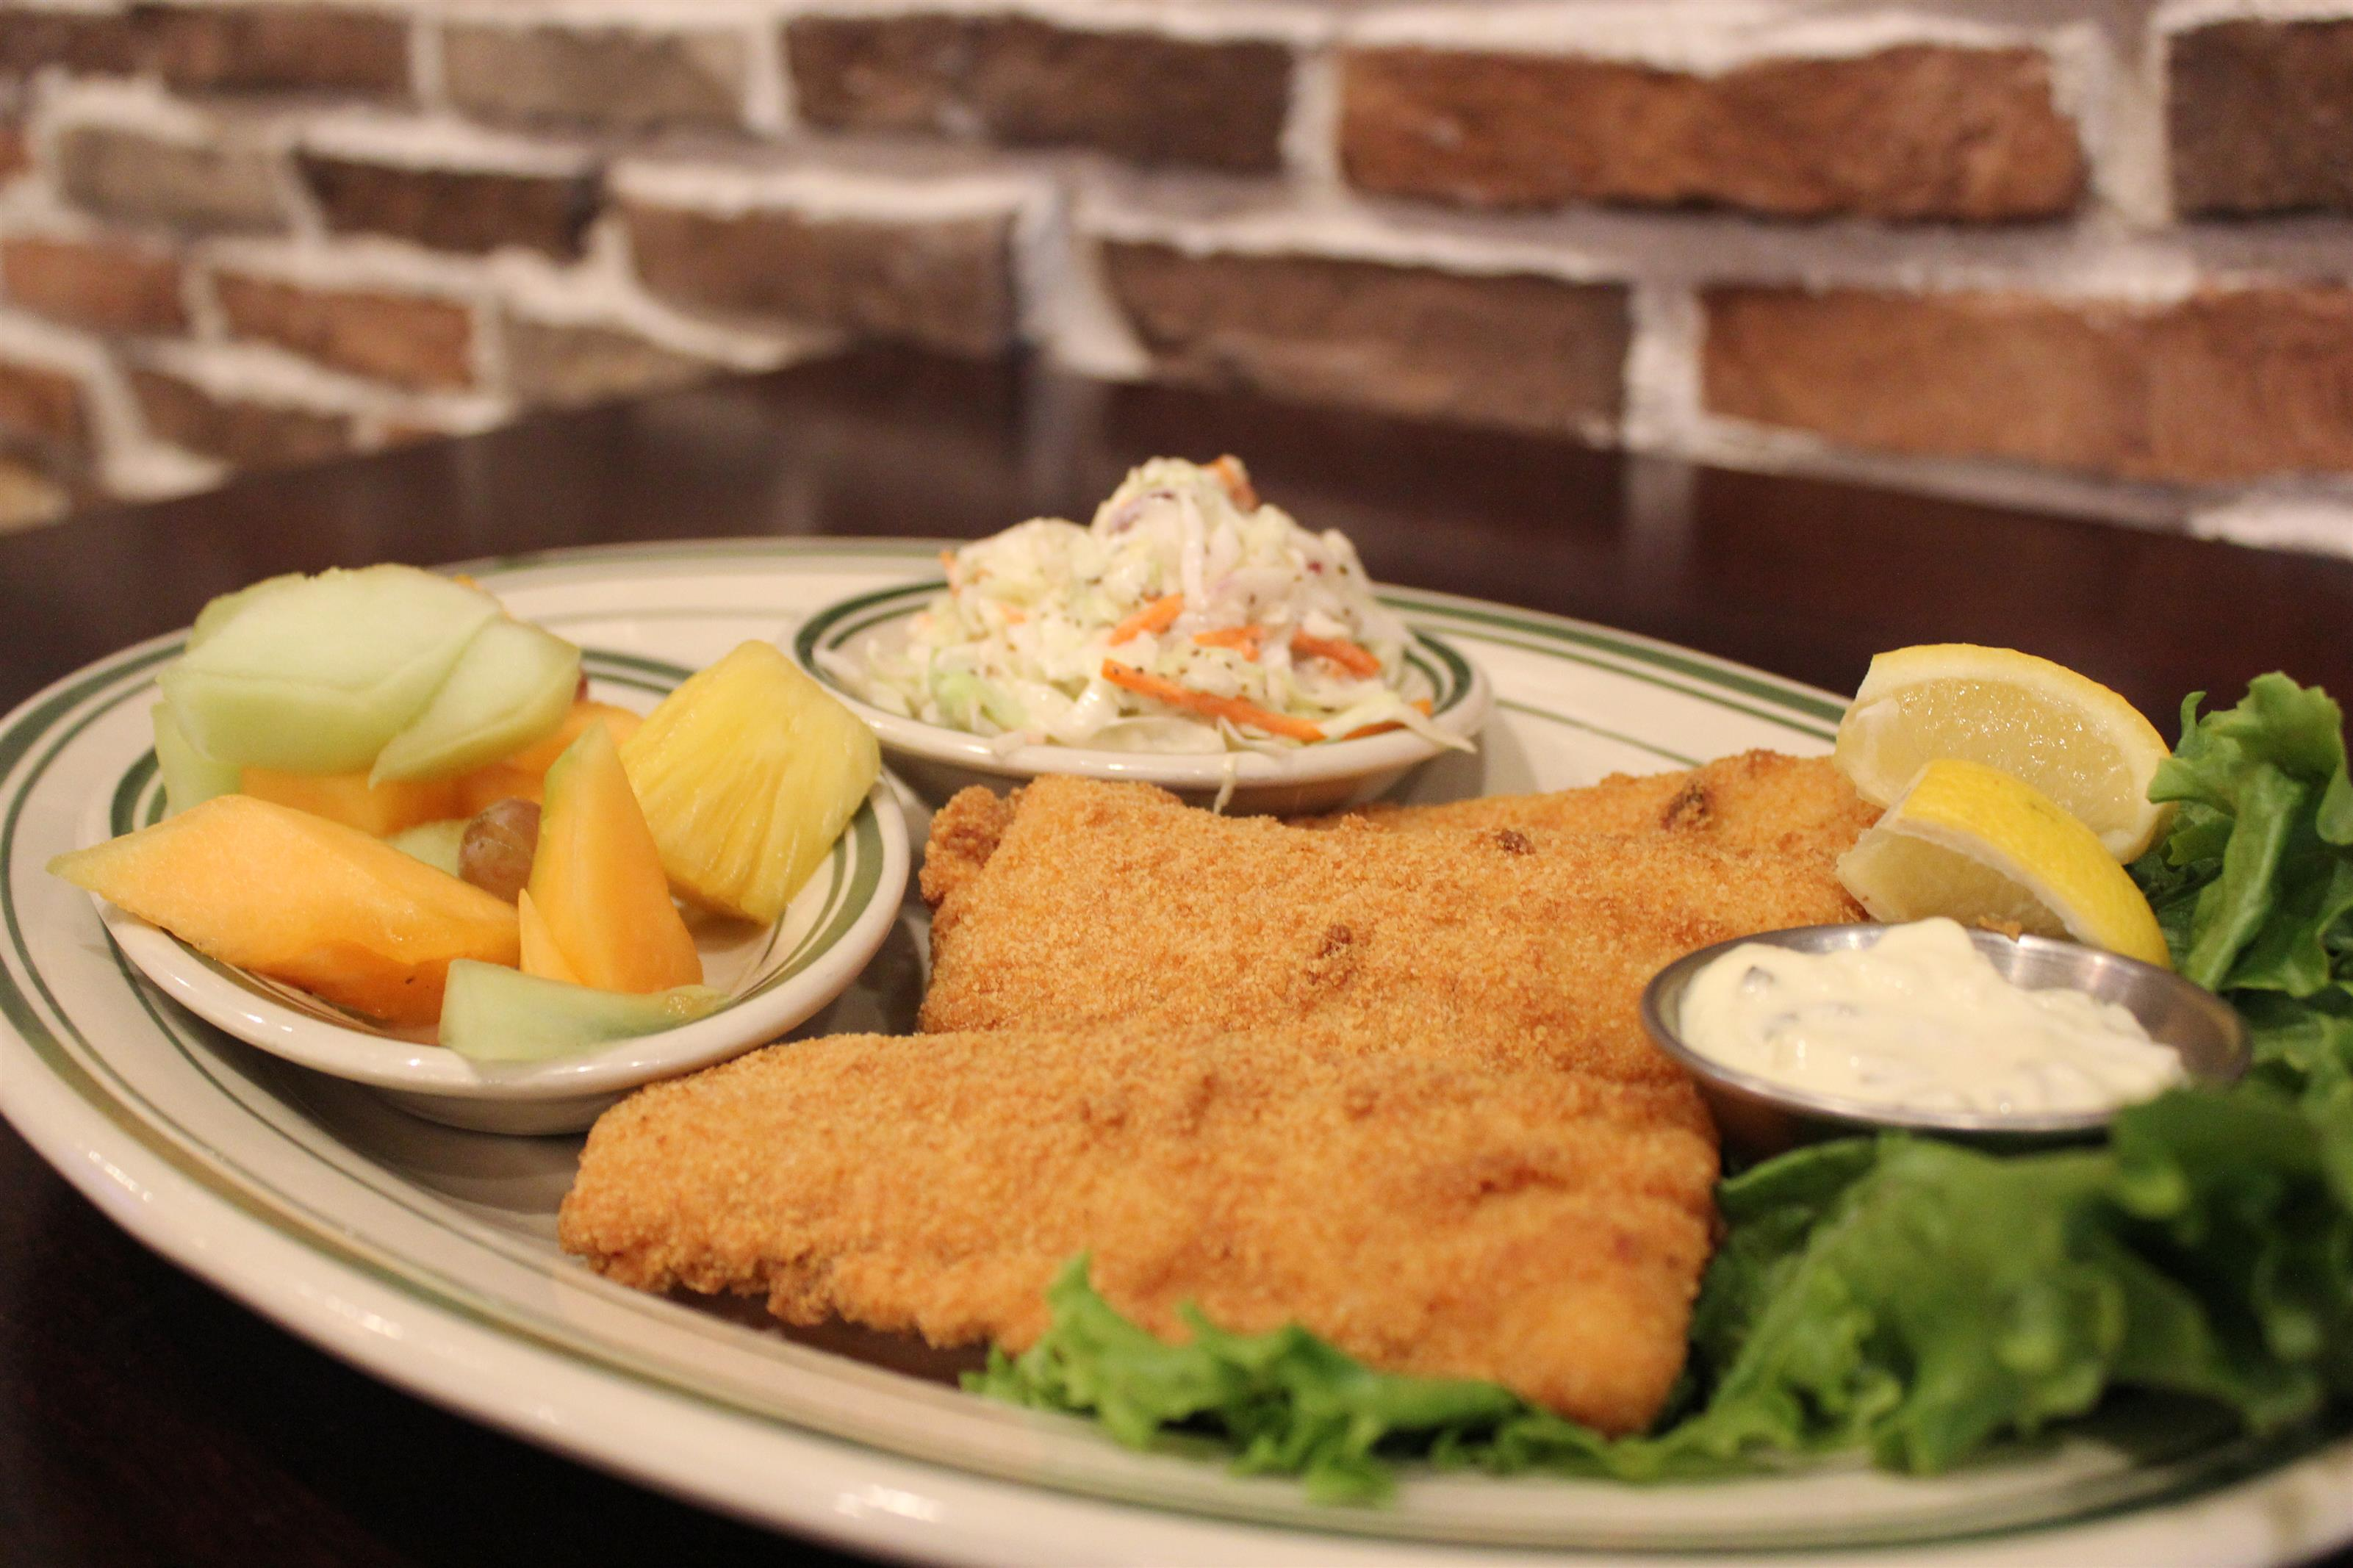 Battered fried fish with cole slaw and fruit